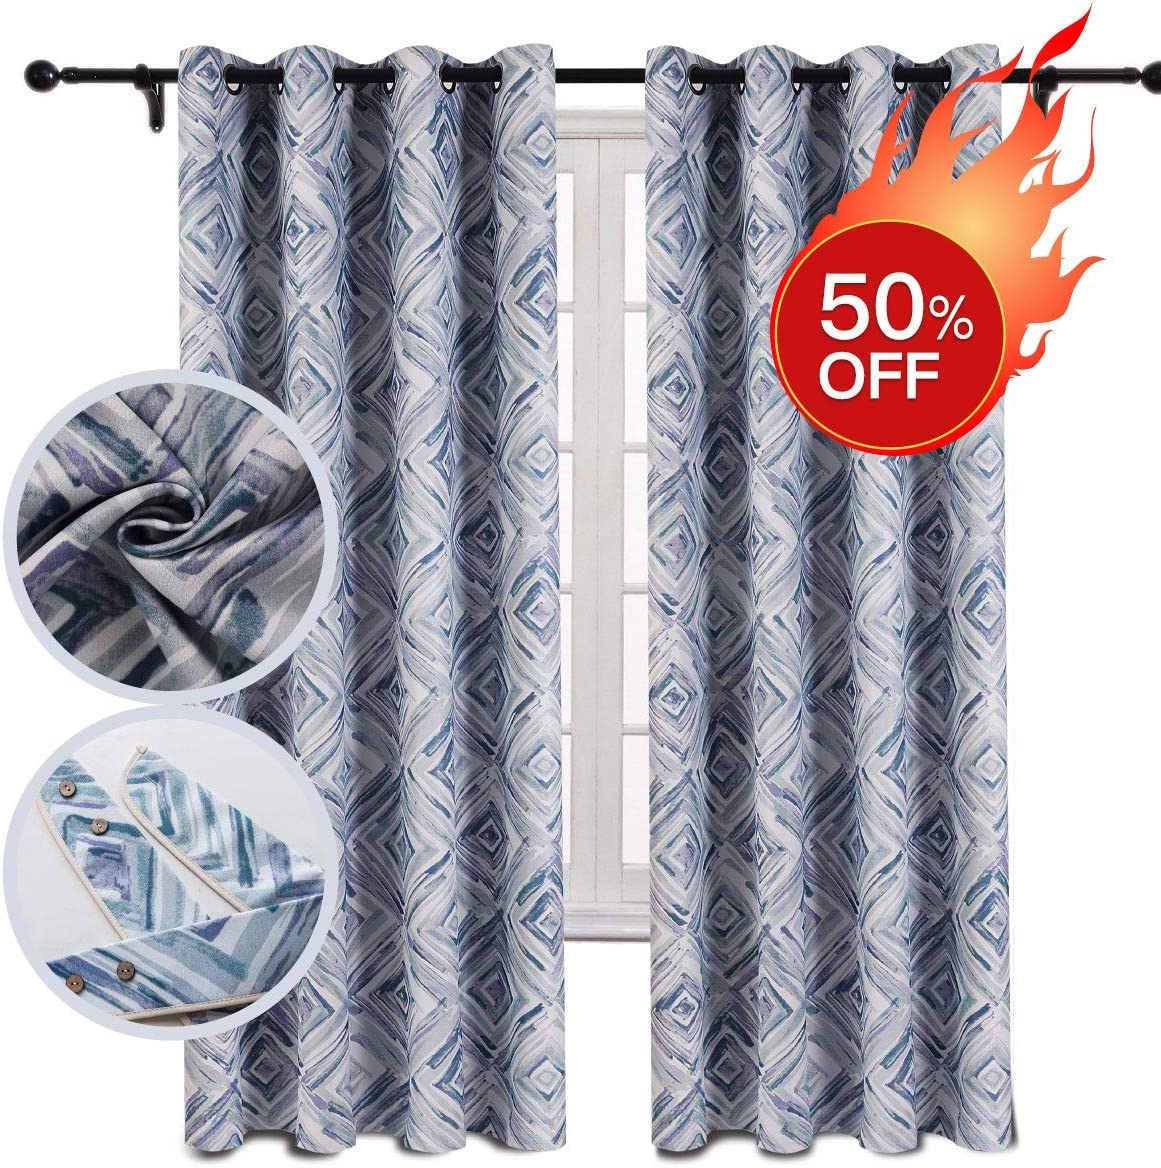 vfanric Thermal Insulated Blackout Curtains, Printed Room Darkening Curtains for Living Room Easy Care Grommet Panels – Square W52 x L84-inch, 2 Panels